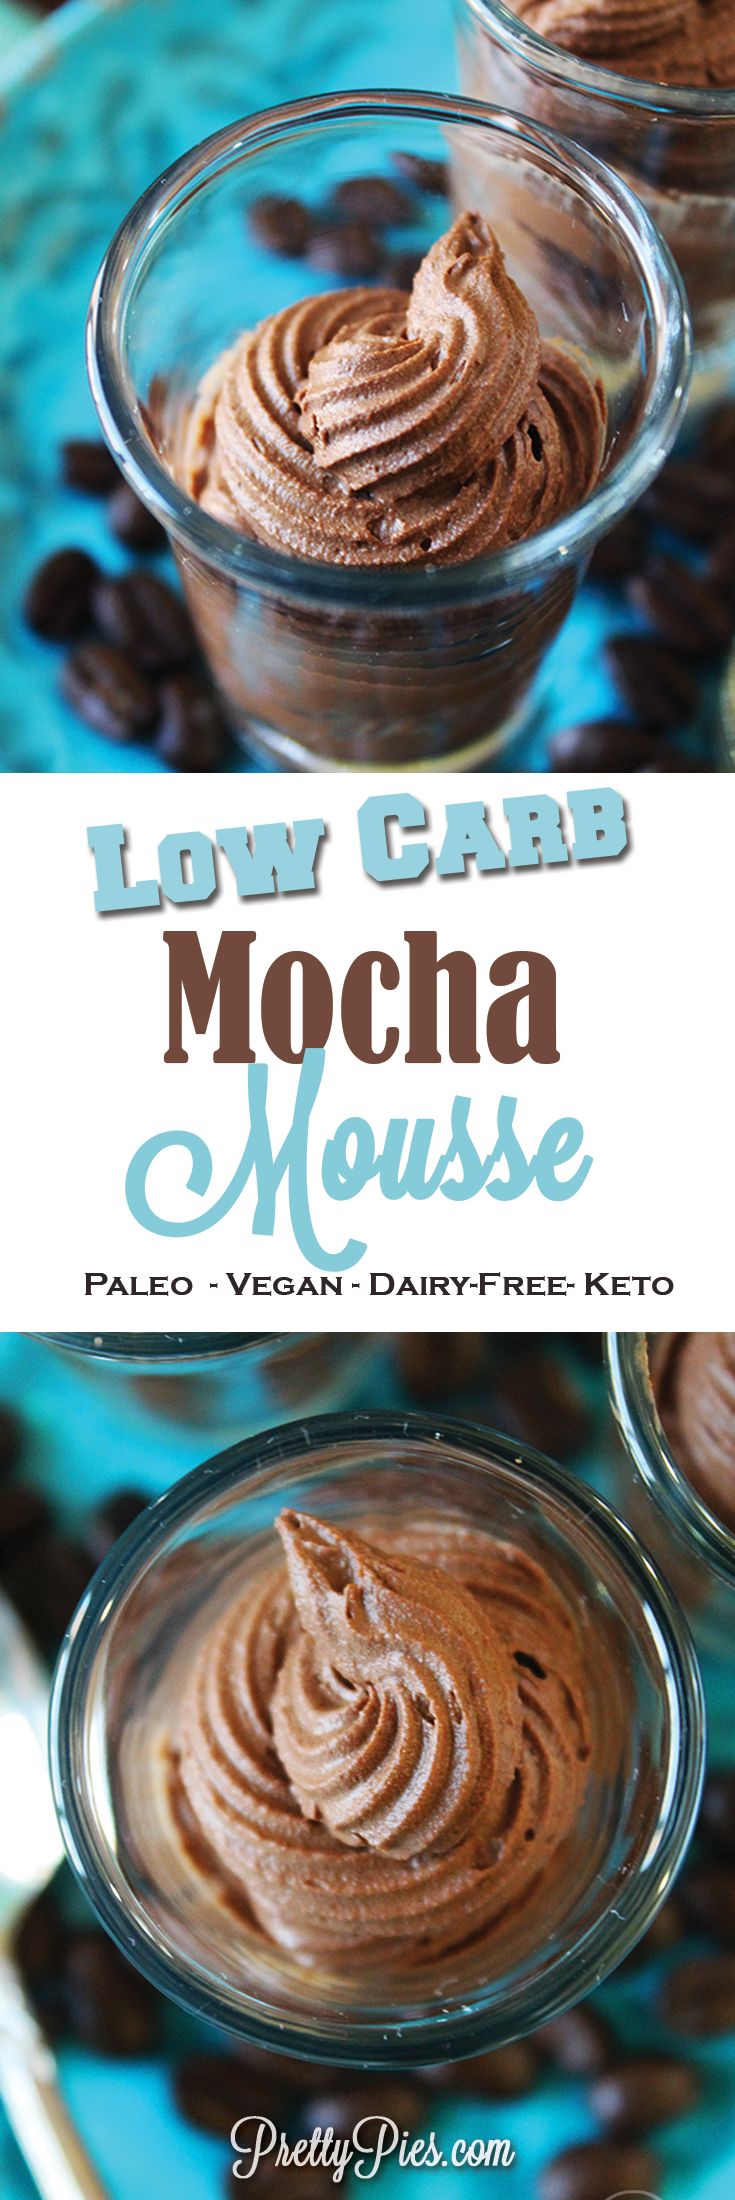 This Low-Carb Mocha Mousse is a decadent chocolate espresso flavored cream-- guilt-free! No sugar and no dairy. 5 ingredients/ 5 minutes. (#Vegan, #Paleo, #Keto) from PrettyPies.com